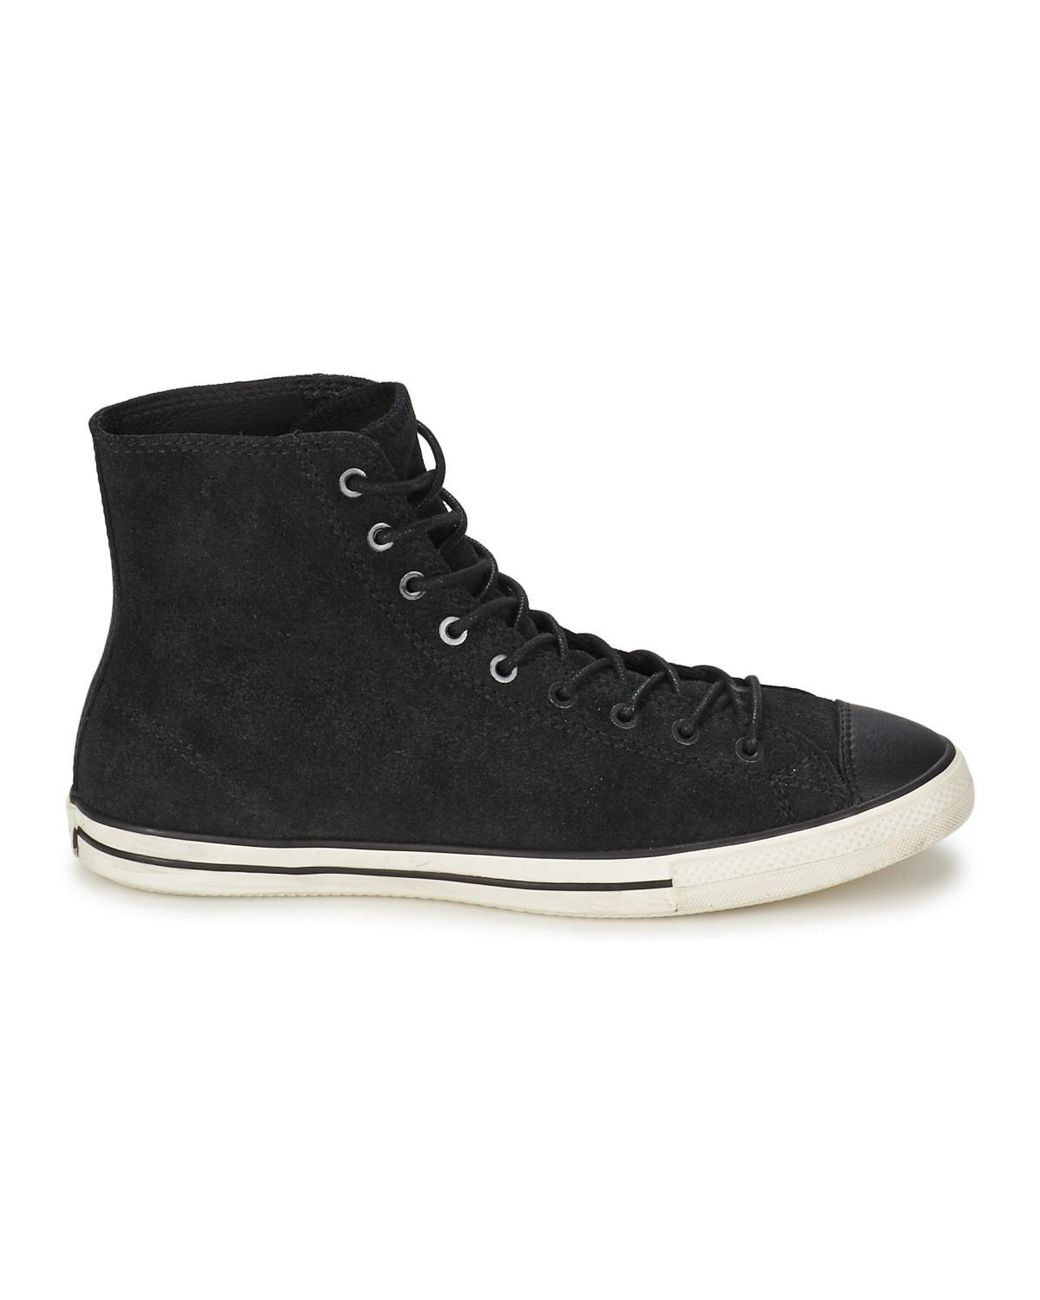 Chaussures femme converse chuck taylor all star leather high